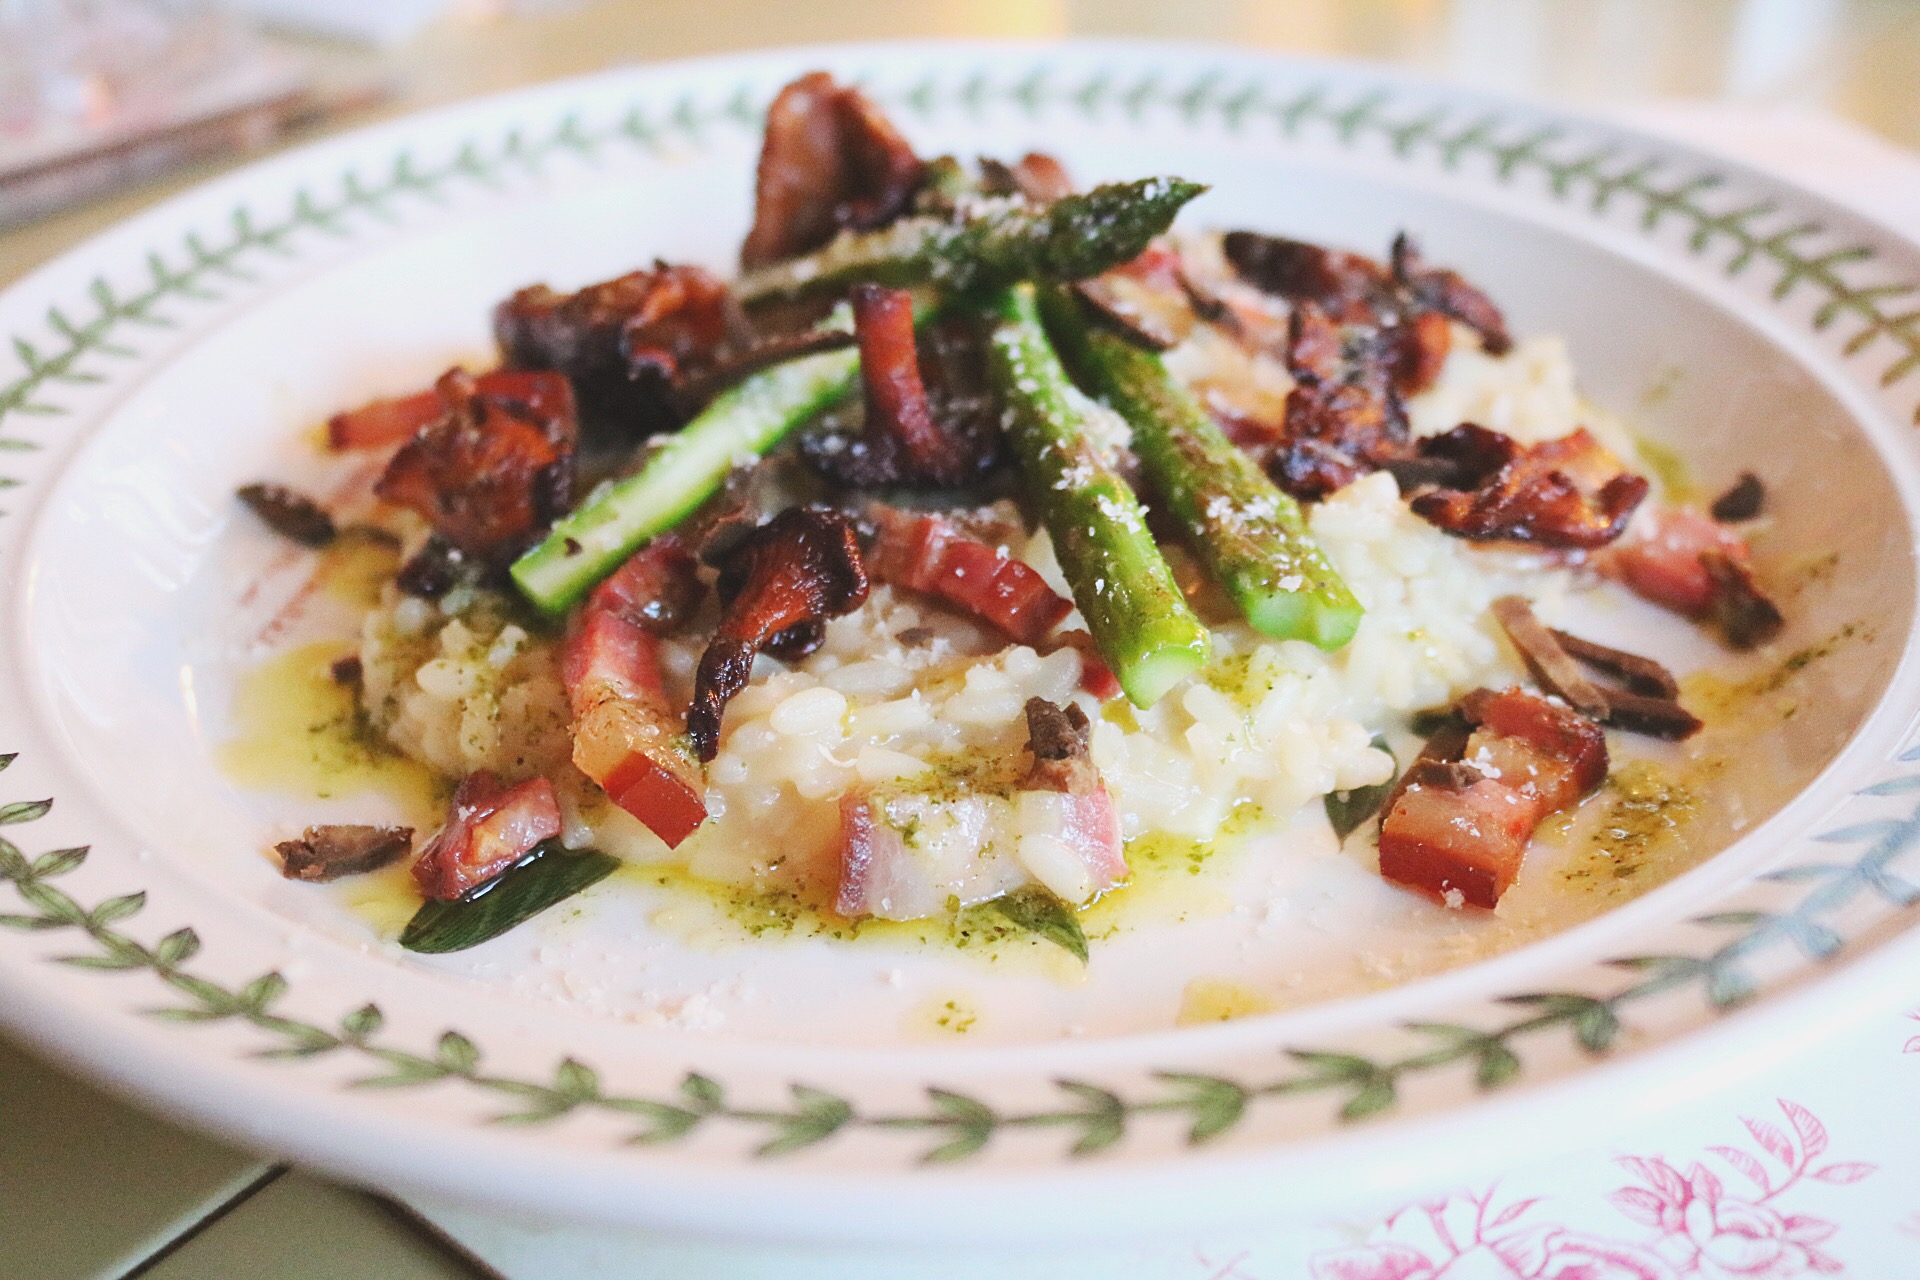 RISOTTO WITH SMOKED PORK BELLY, CHANTERELLE AND ASPARAGUS